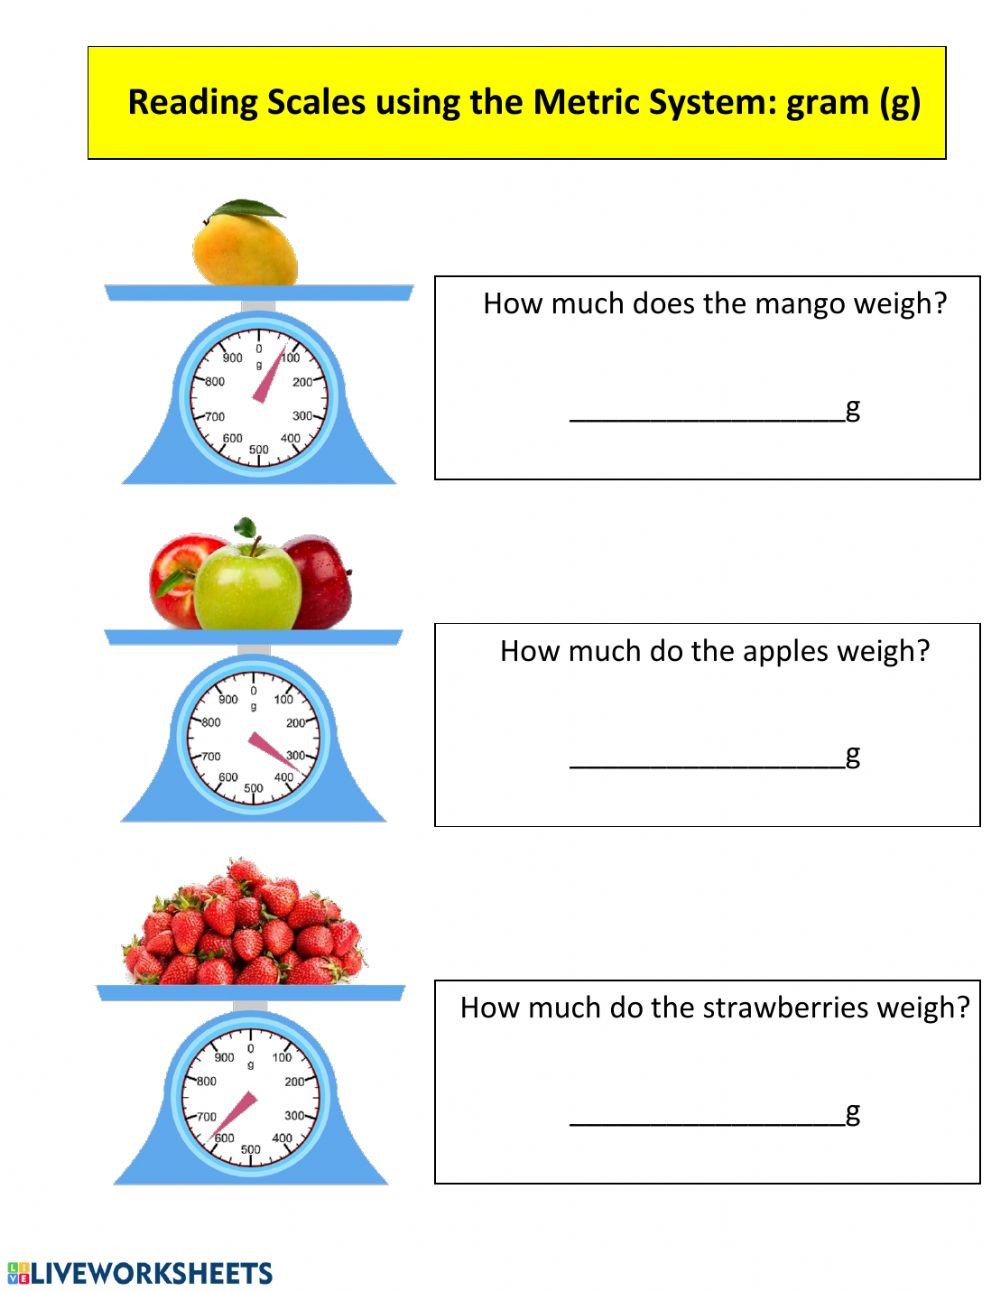 Reading Scales Worksheets Reading Scales In the Metric System Gram G Interactive